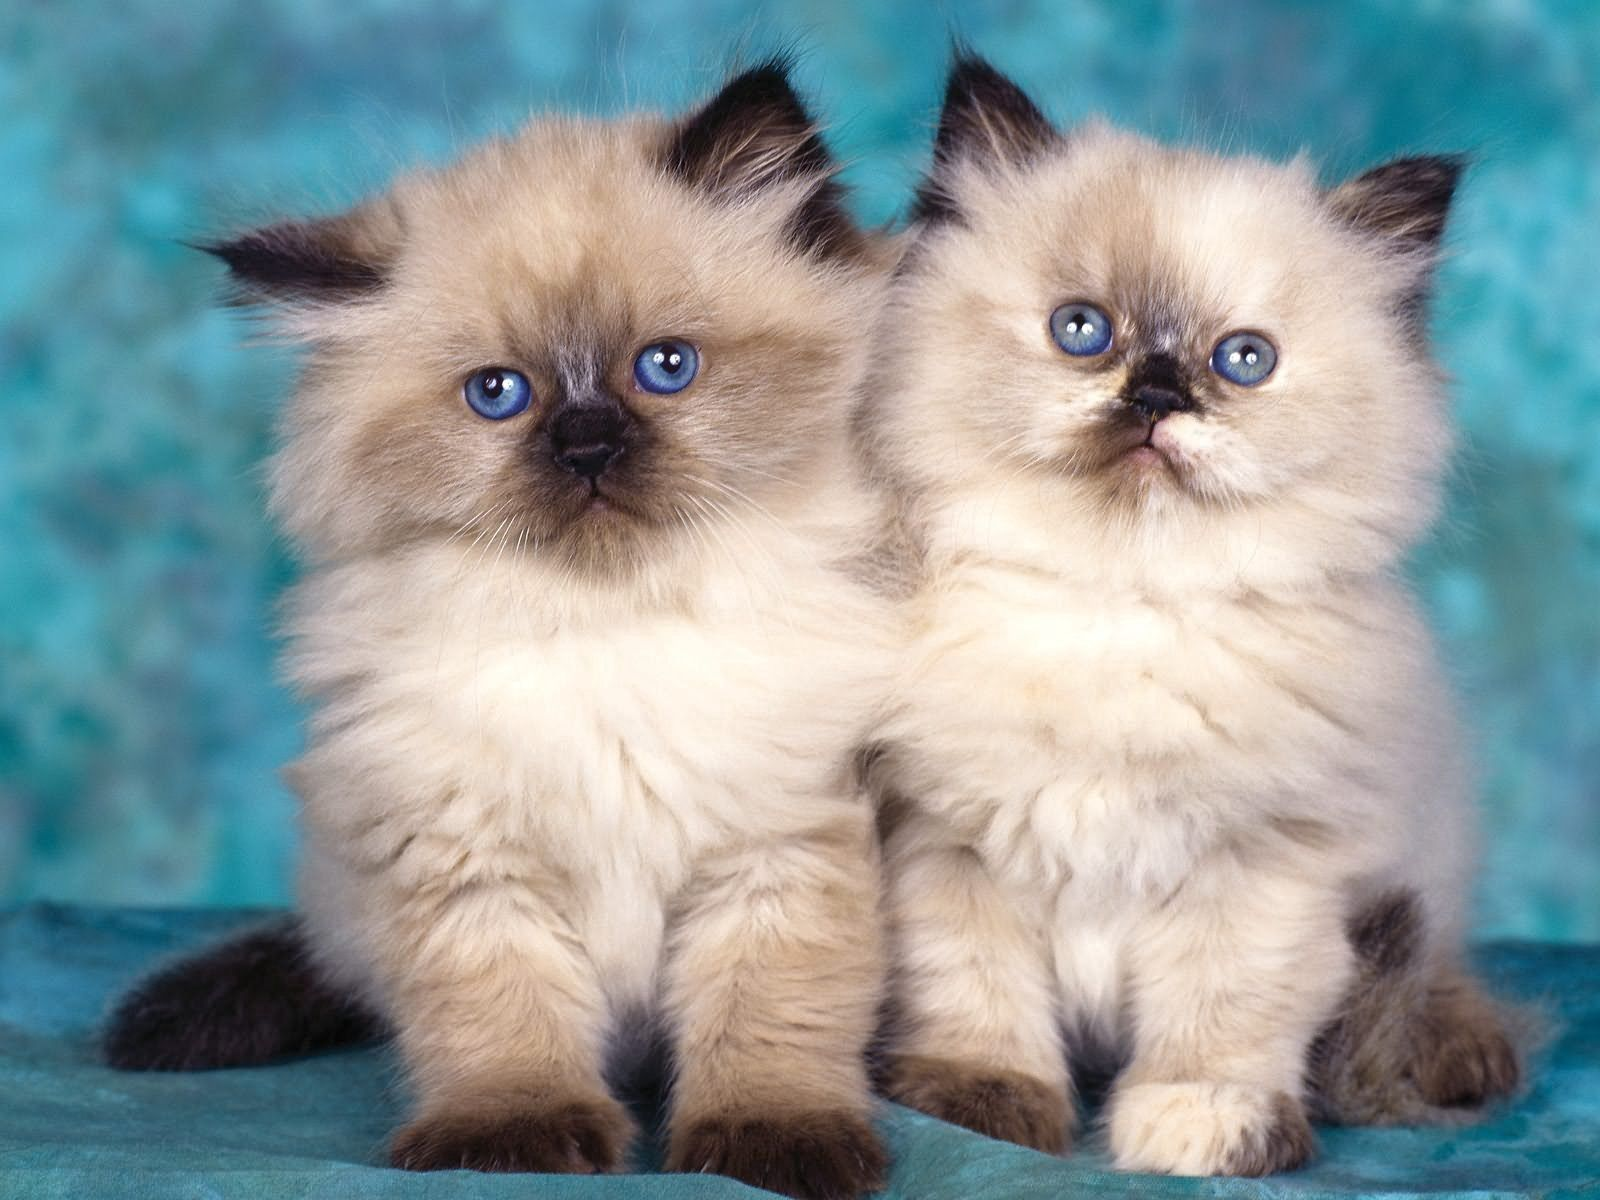 147137 download wallpaper Animals, Sit, Fluffy, Couple, Pair, Kittens screensavers and pictures for free